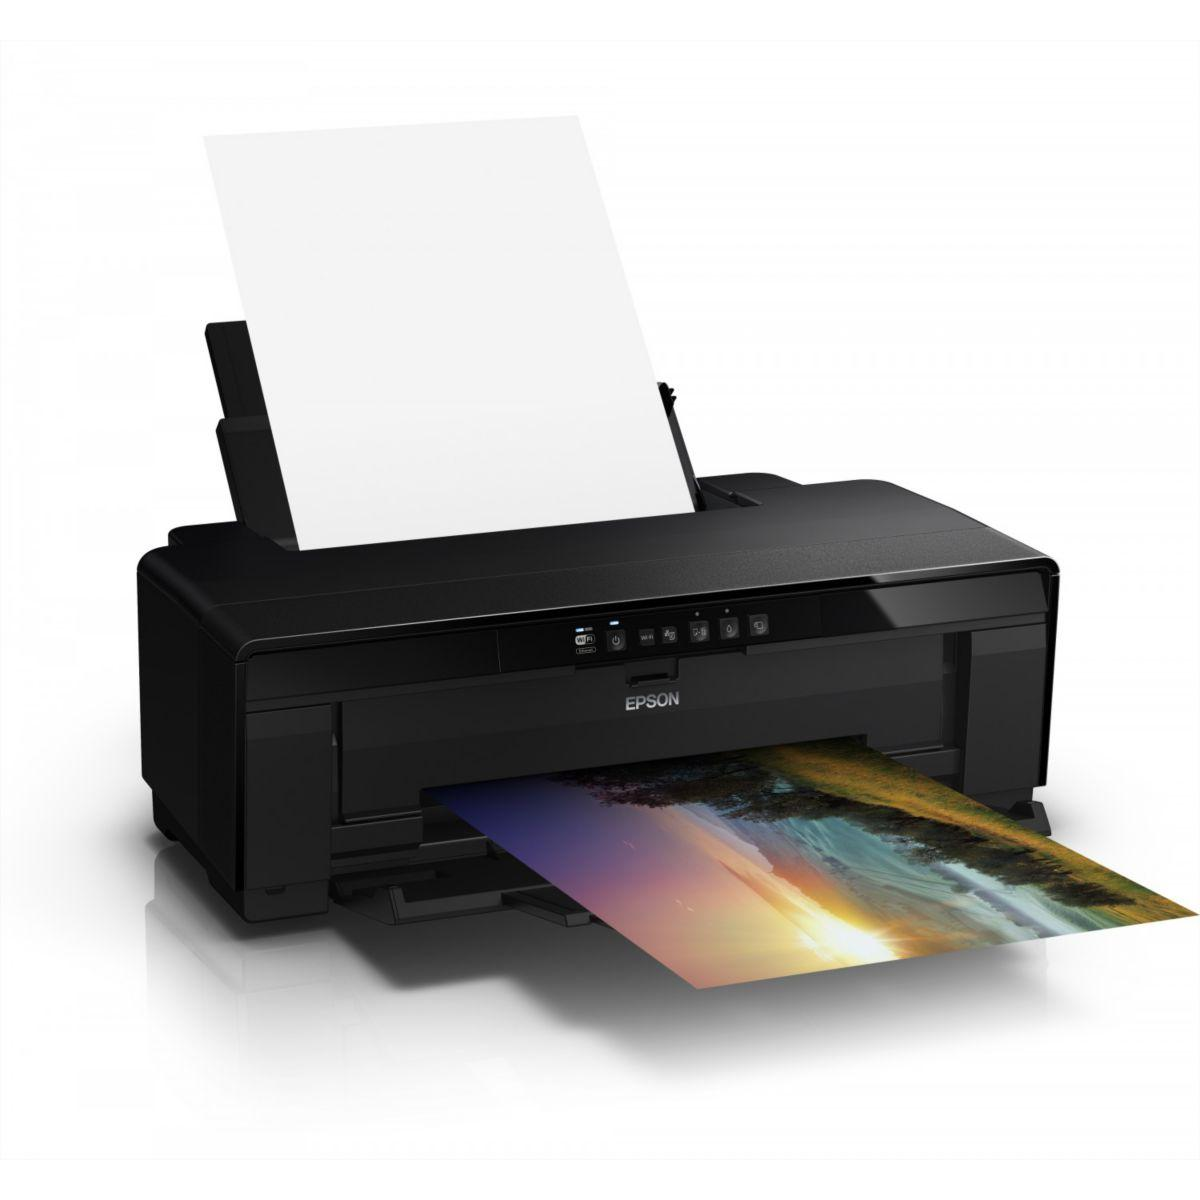 Imprimante monofonction jet d'encre epson sc-p400 (photo)